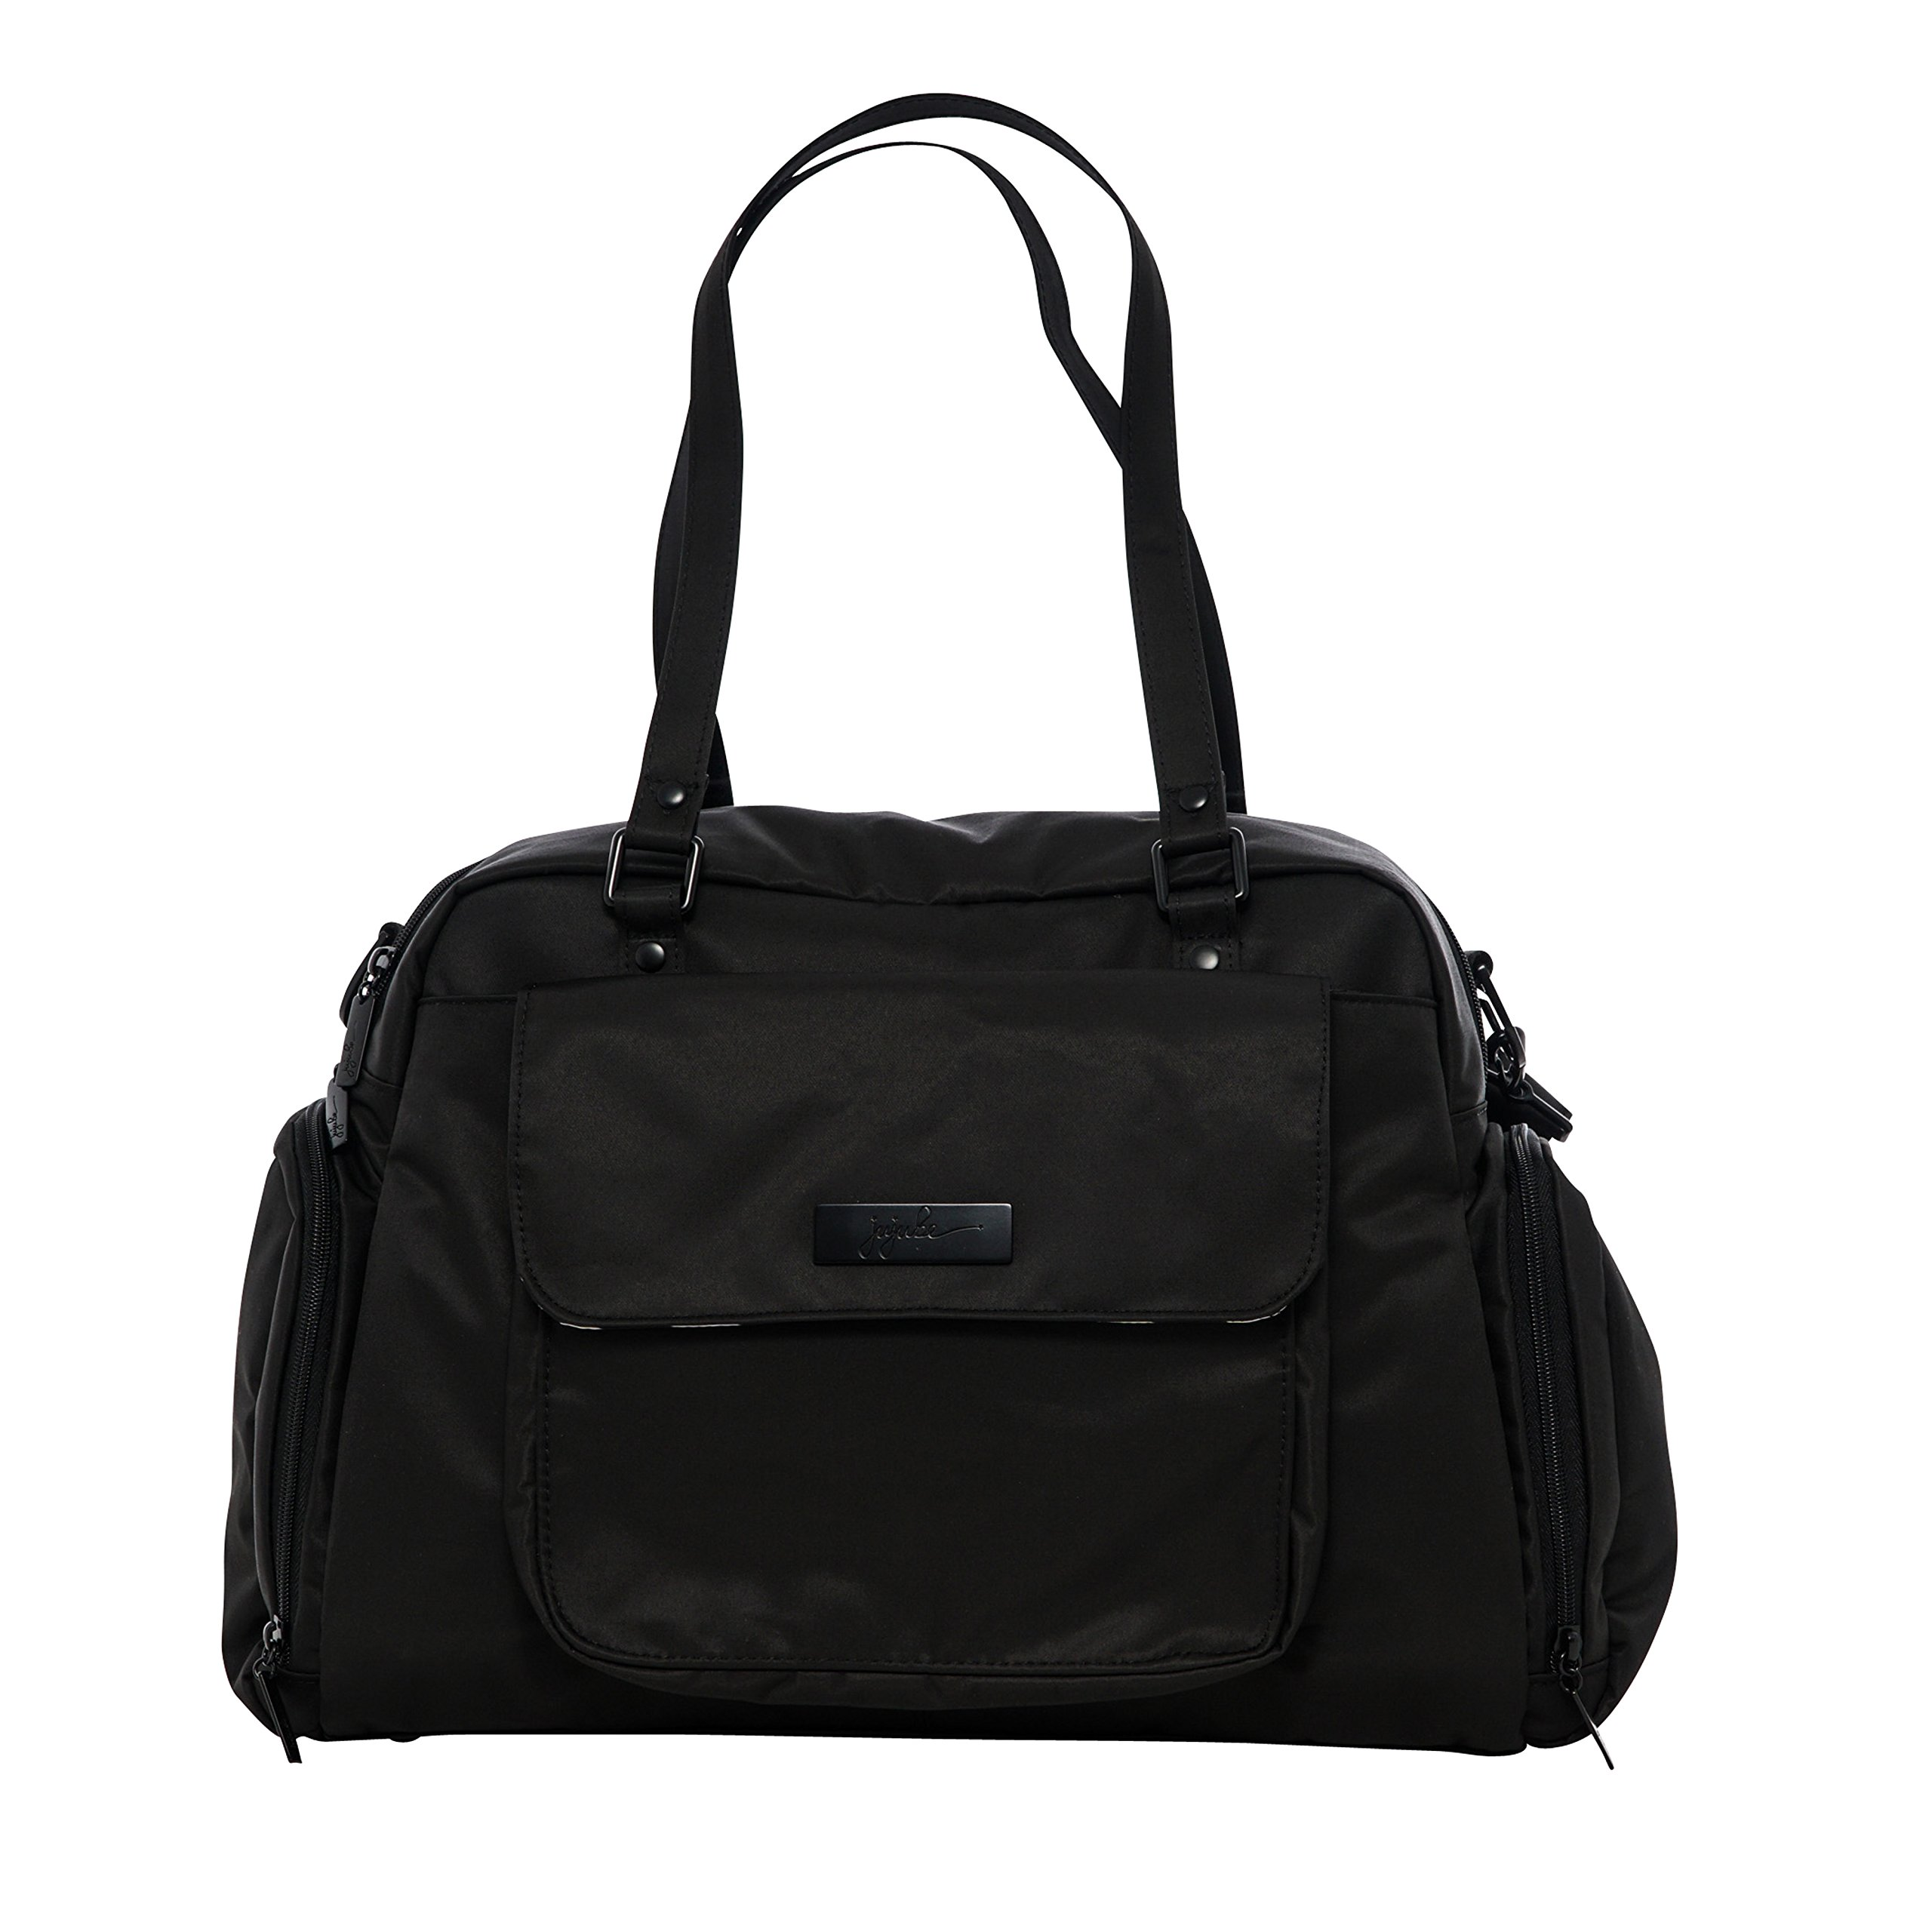 JuJuBe Be Pumped Insulated Breast Pump Bag, Onyx Collection - Black Out